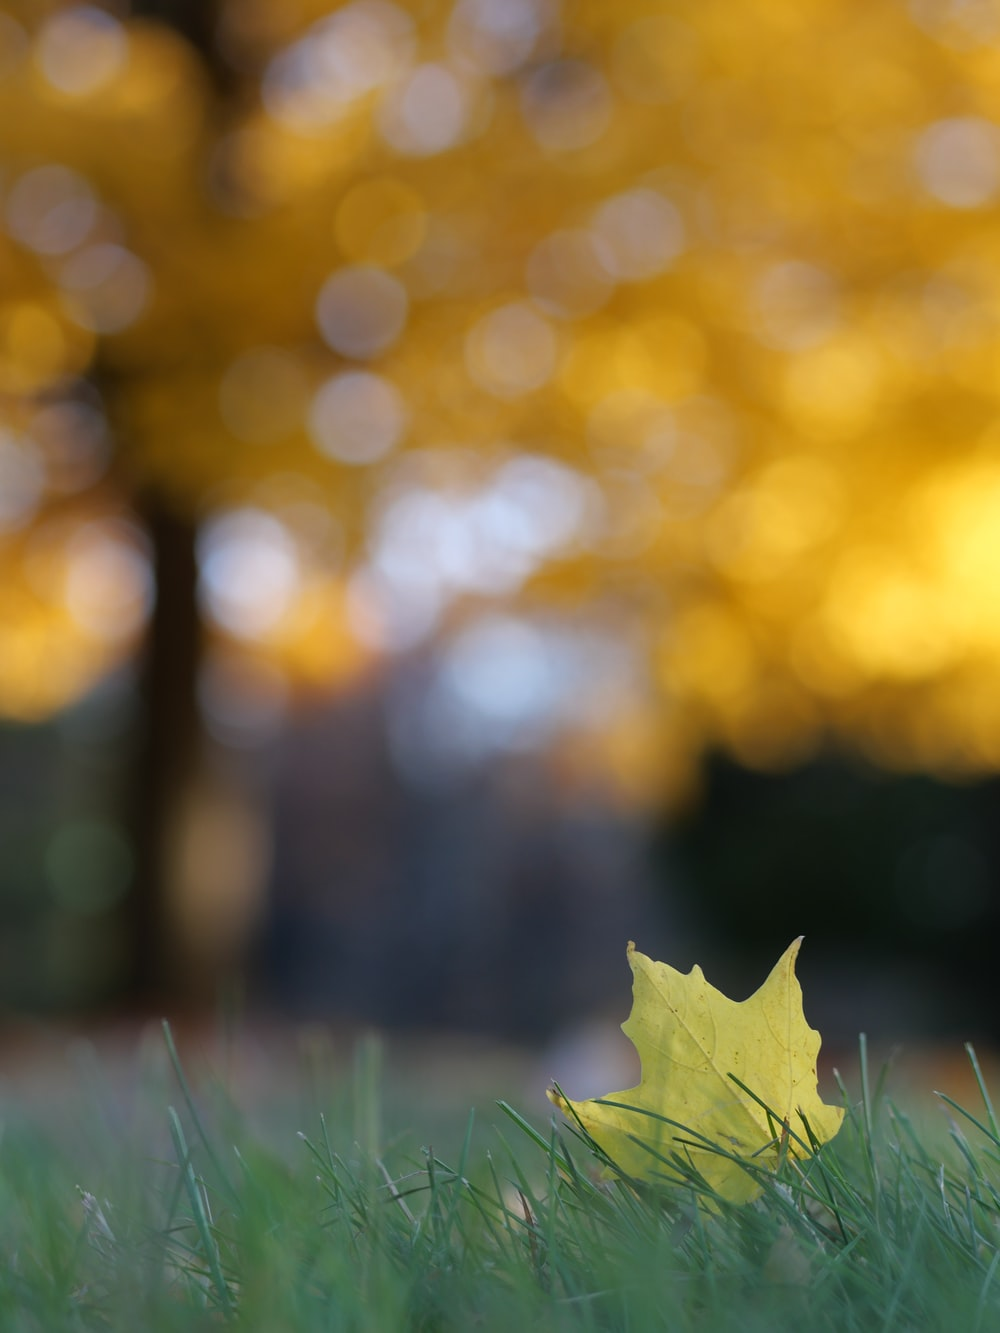 green maple leaf on green grass during daytime